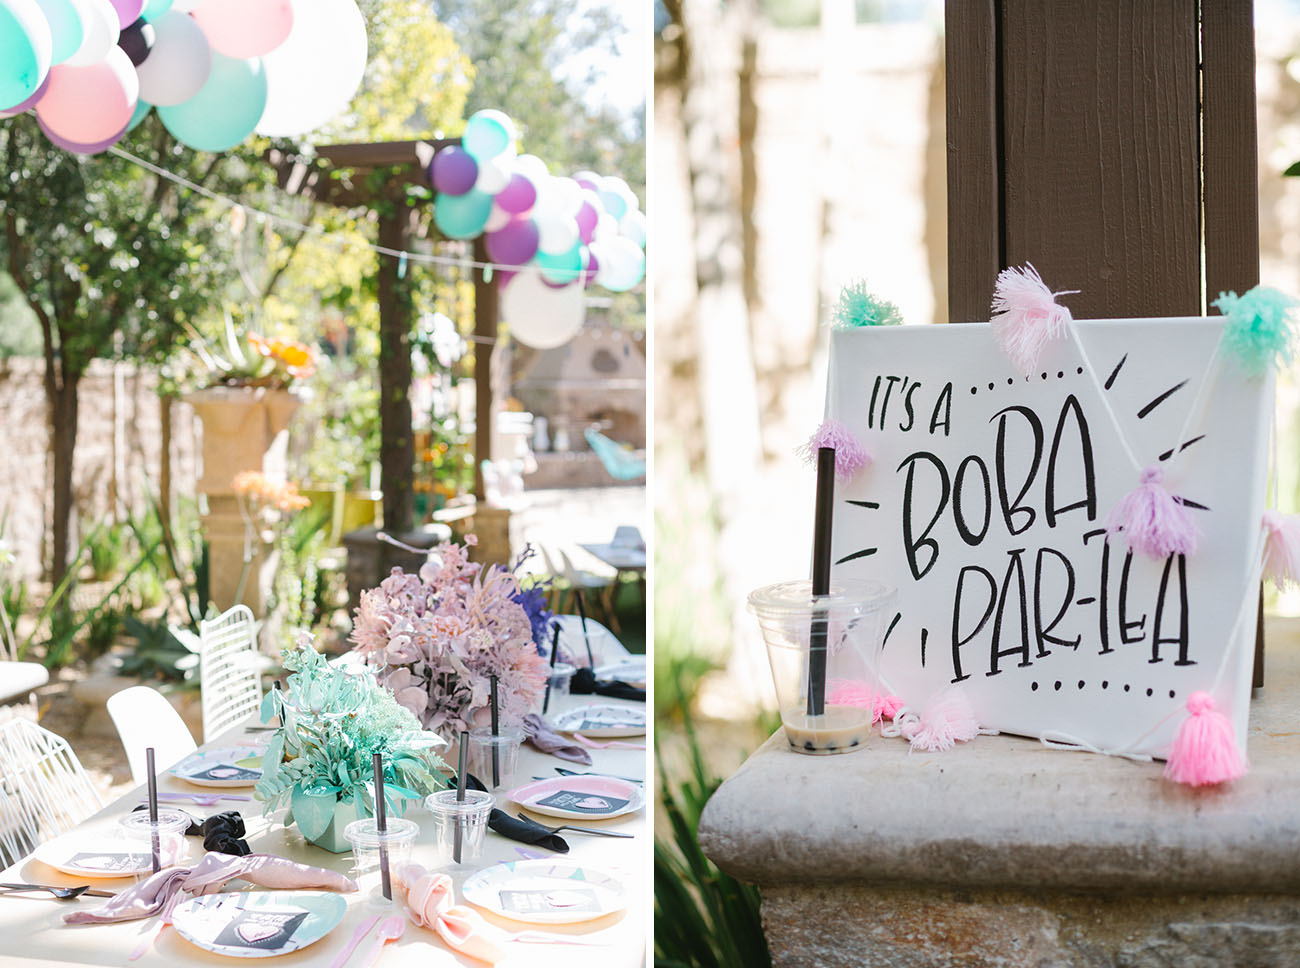 Boba Themed Party Inspiration